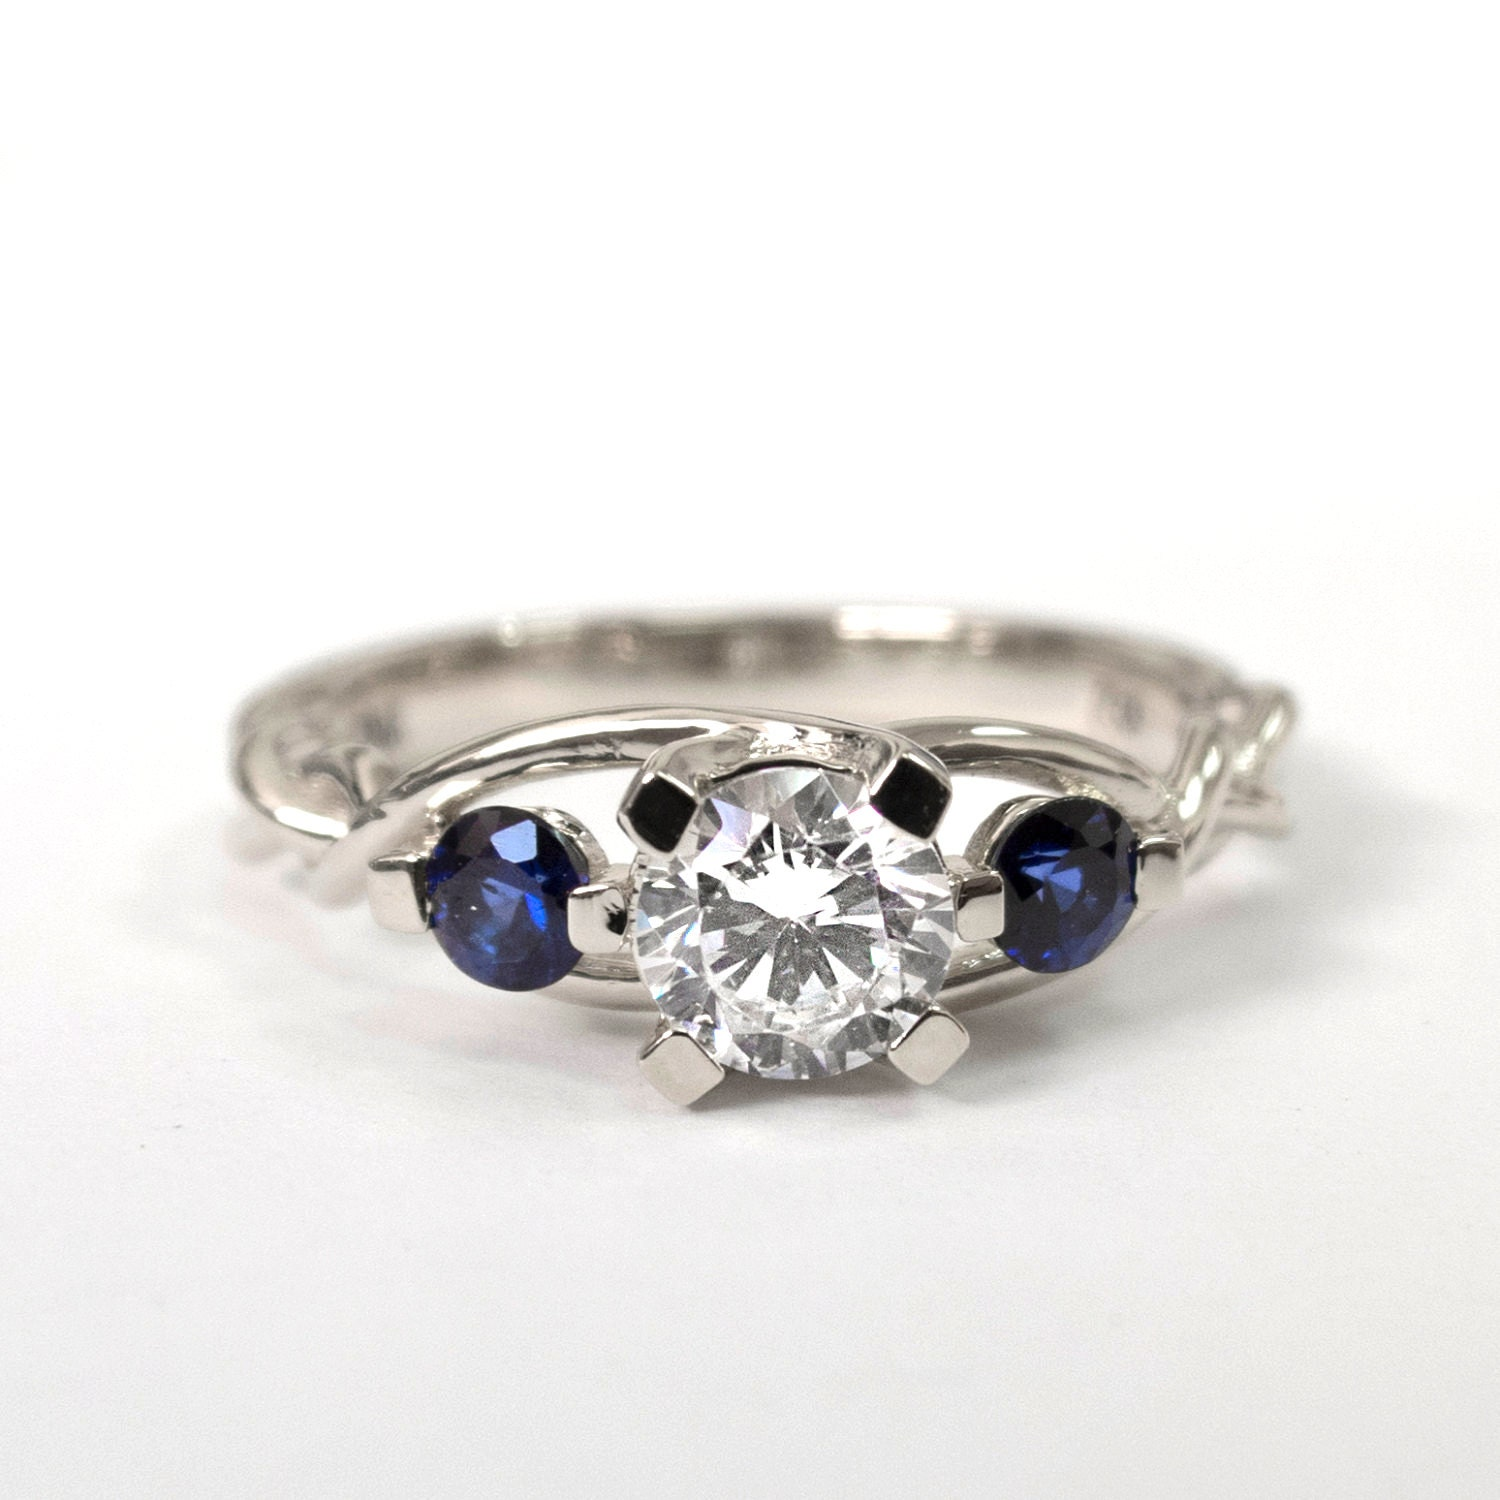 Braided Engagement Ring No 7 Diamonds and Sapphire